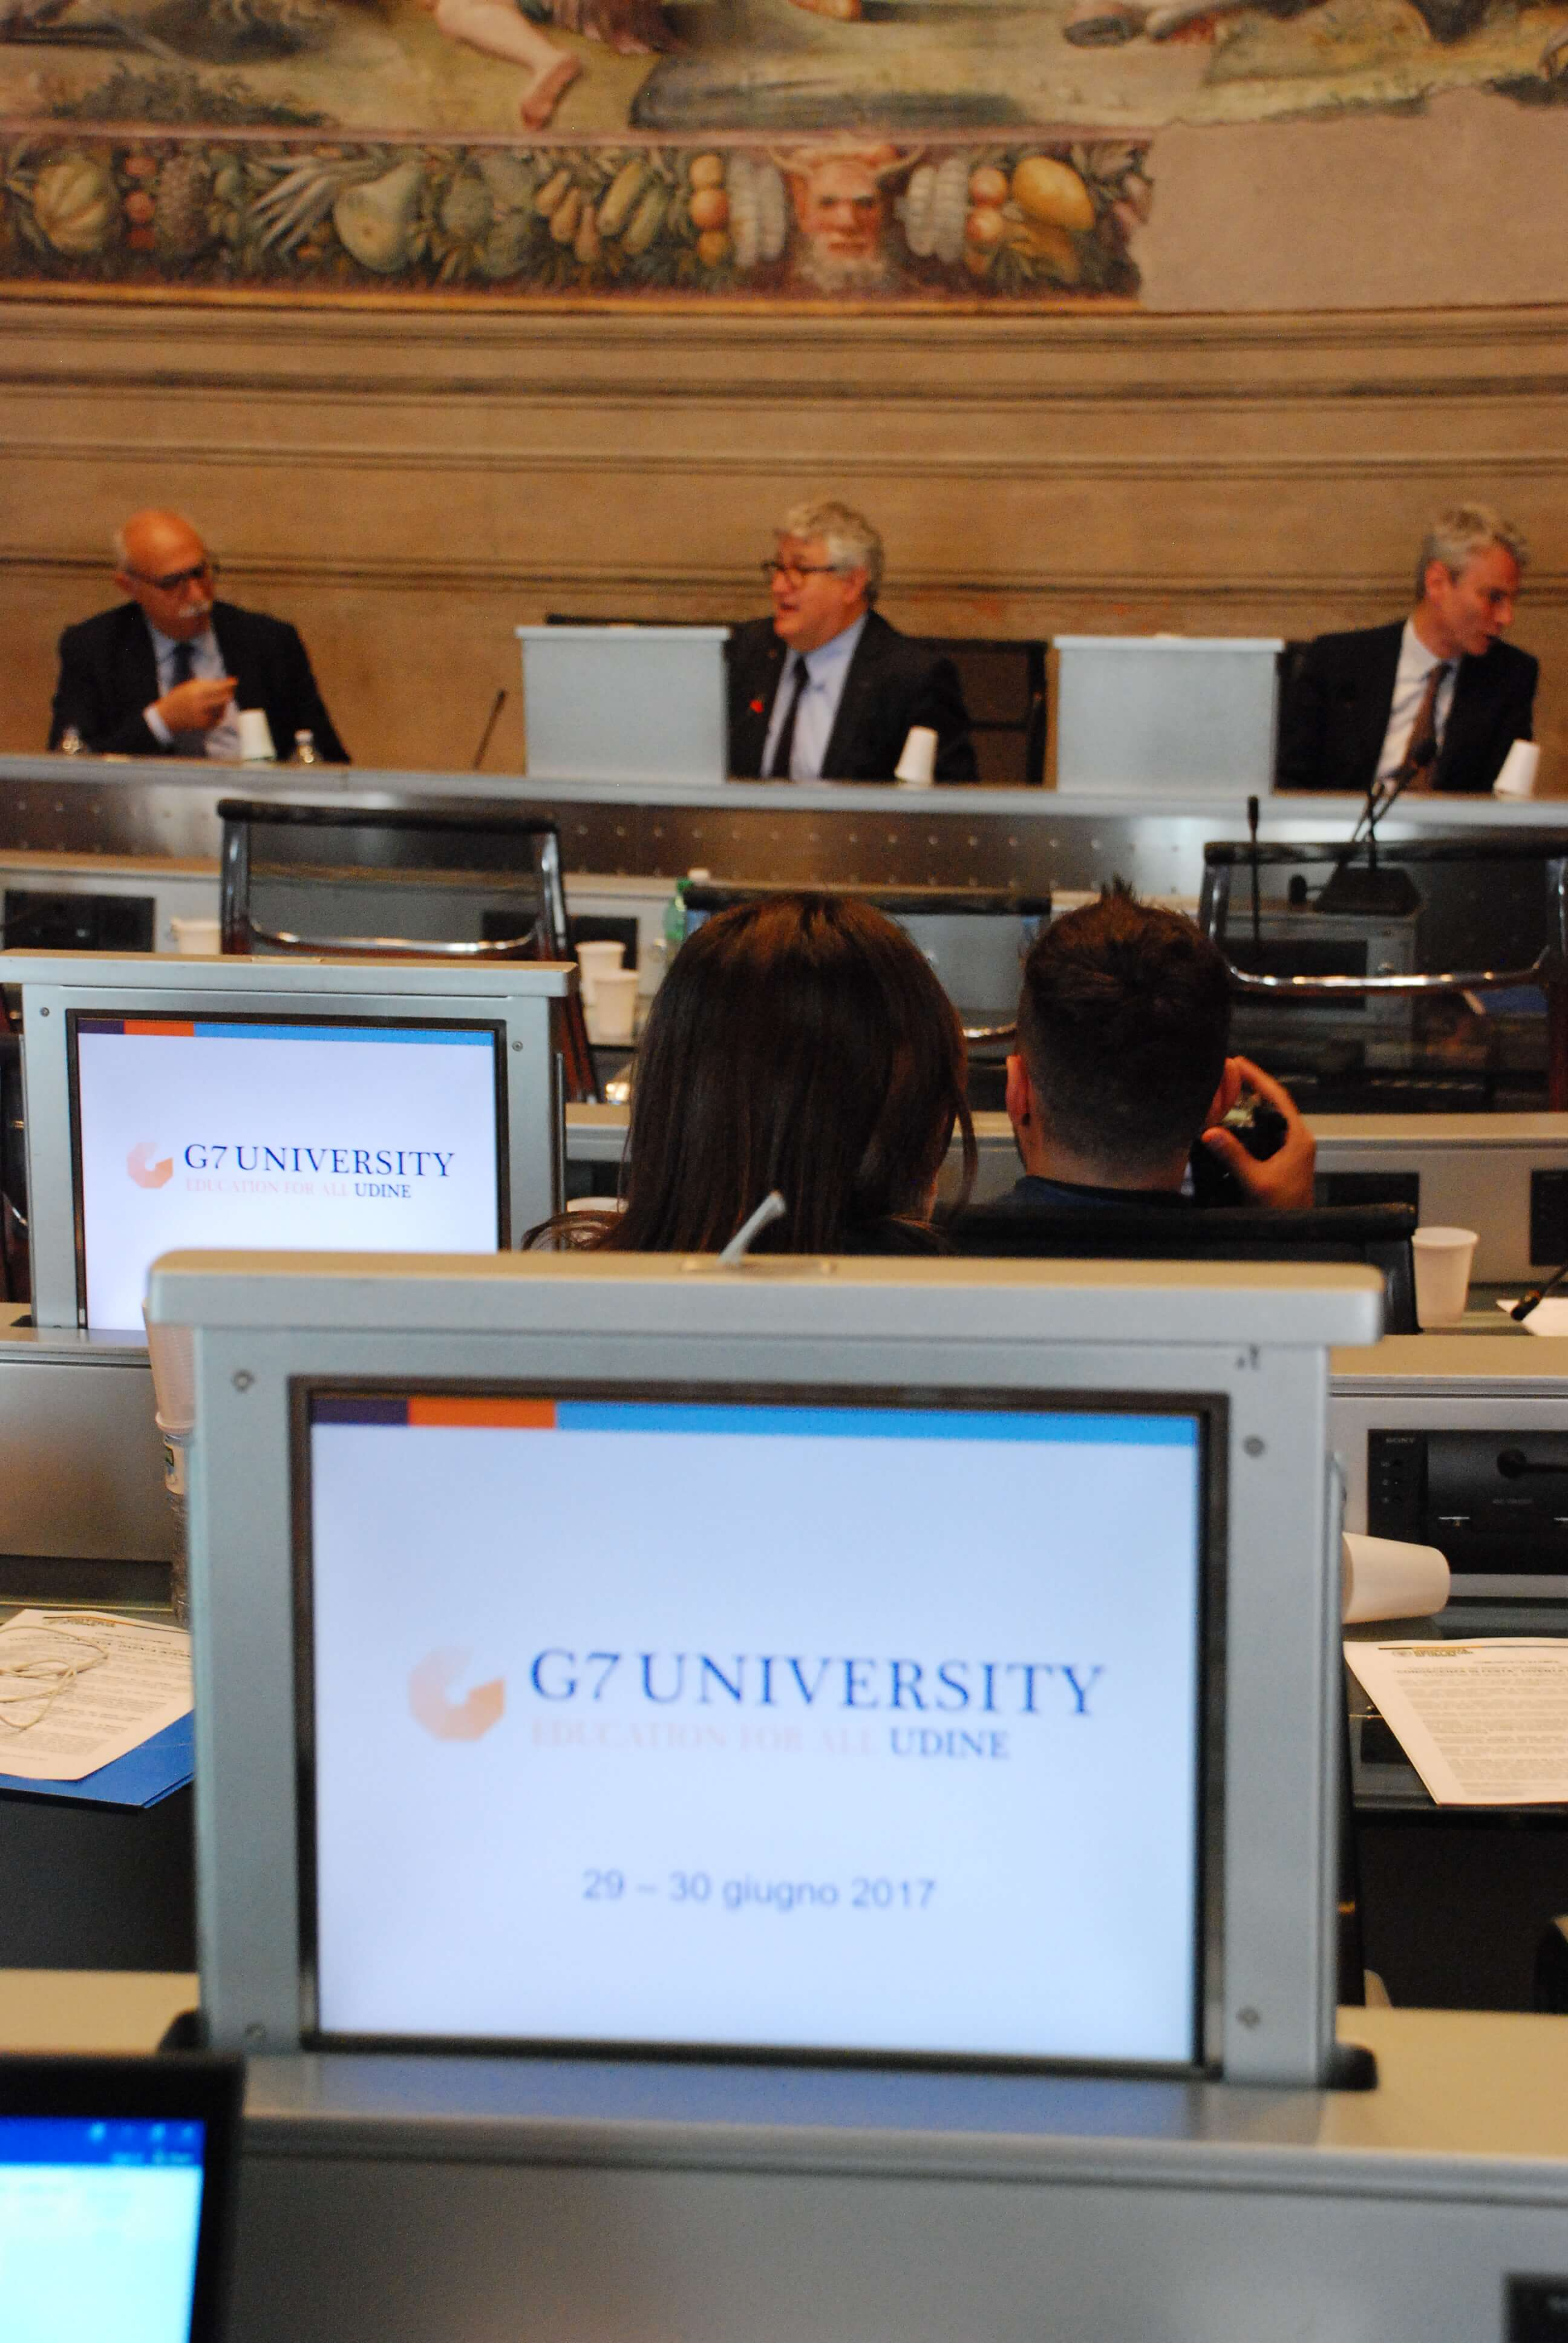 Calendario Uniud.G7 University Manifesto Di Udine G7 Universita Crui